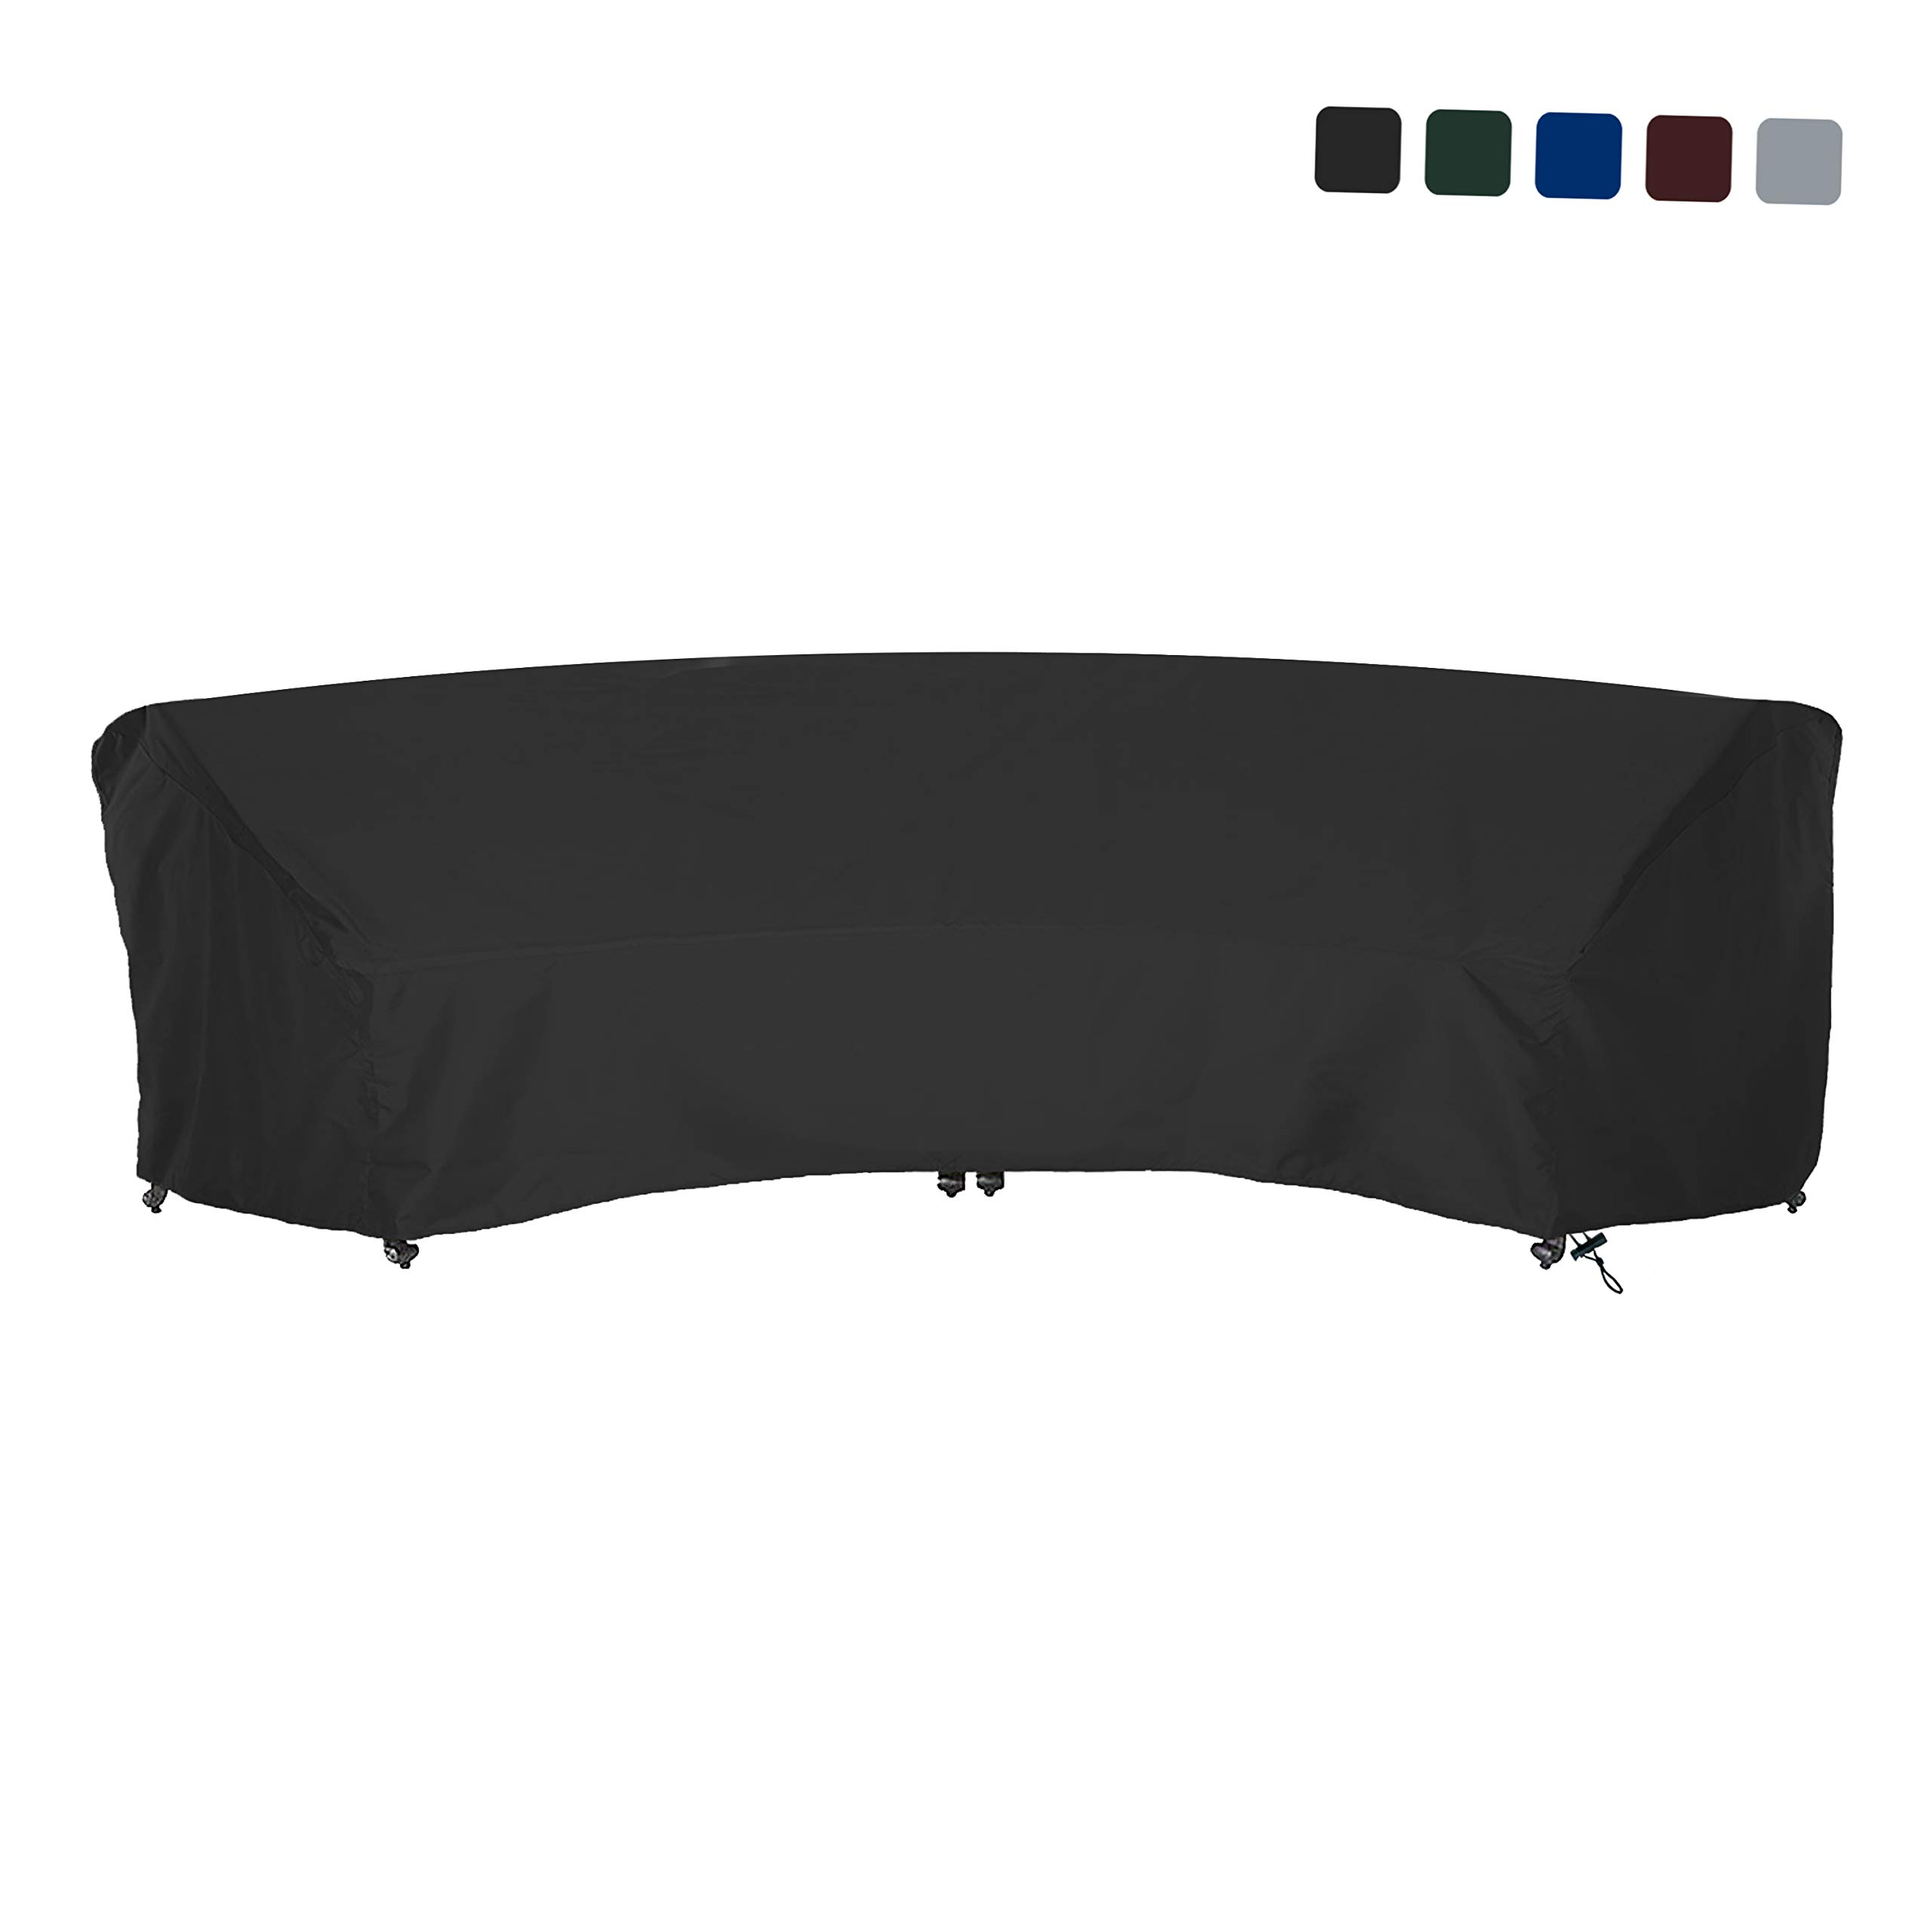 COVERS & ALL Curved Sofa Cover 18 Oz Waterproof - 100% UV & Weather Resistant Customize Outdoor Sofa Cover with Air Pockets and Drawstring with Snug Fit (120 L x 36 W x 38 H x 82 FL, Black)